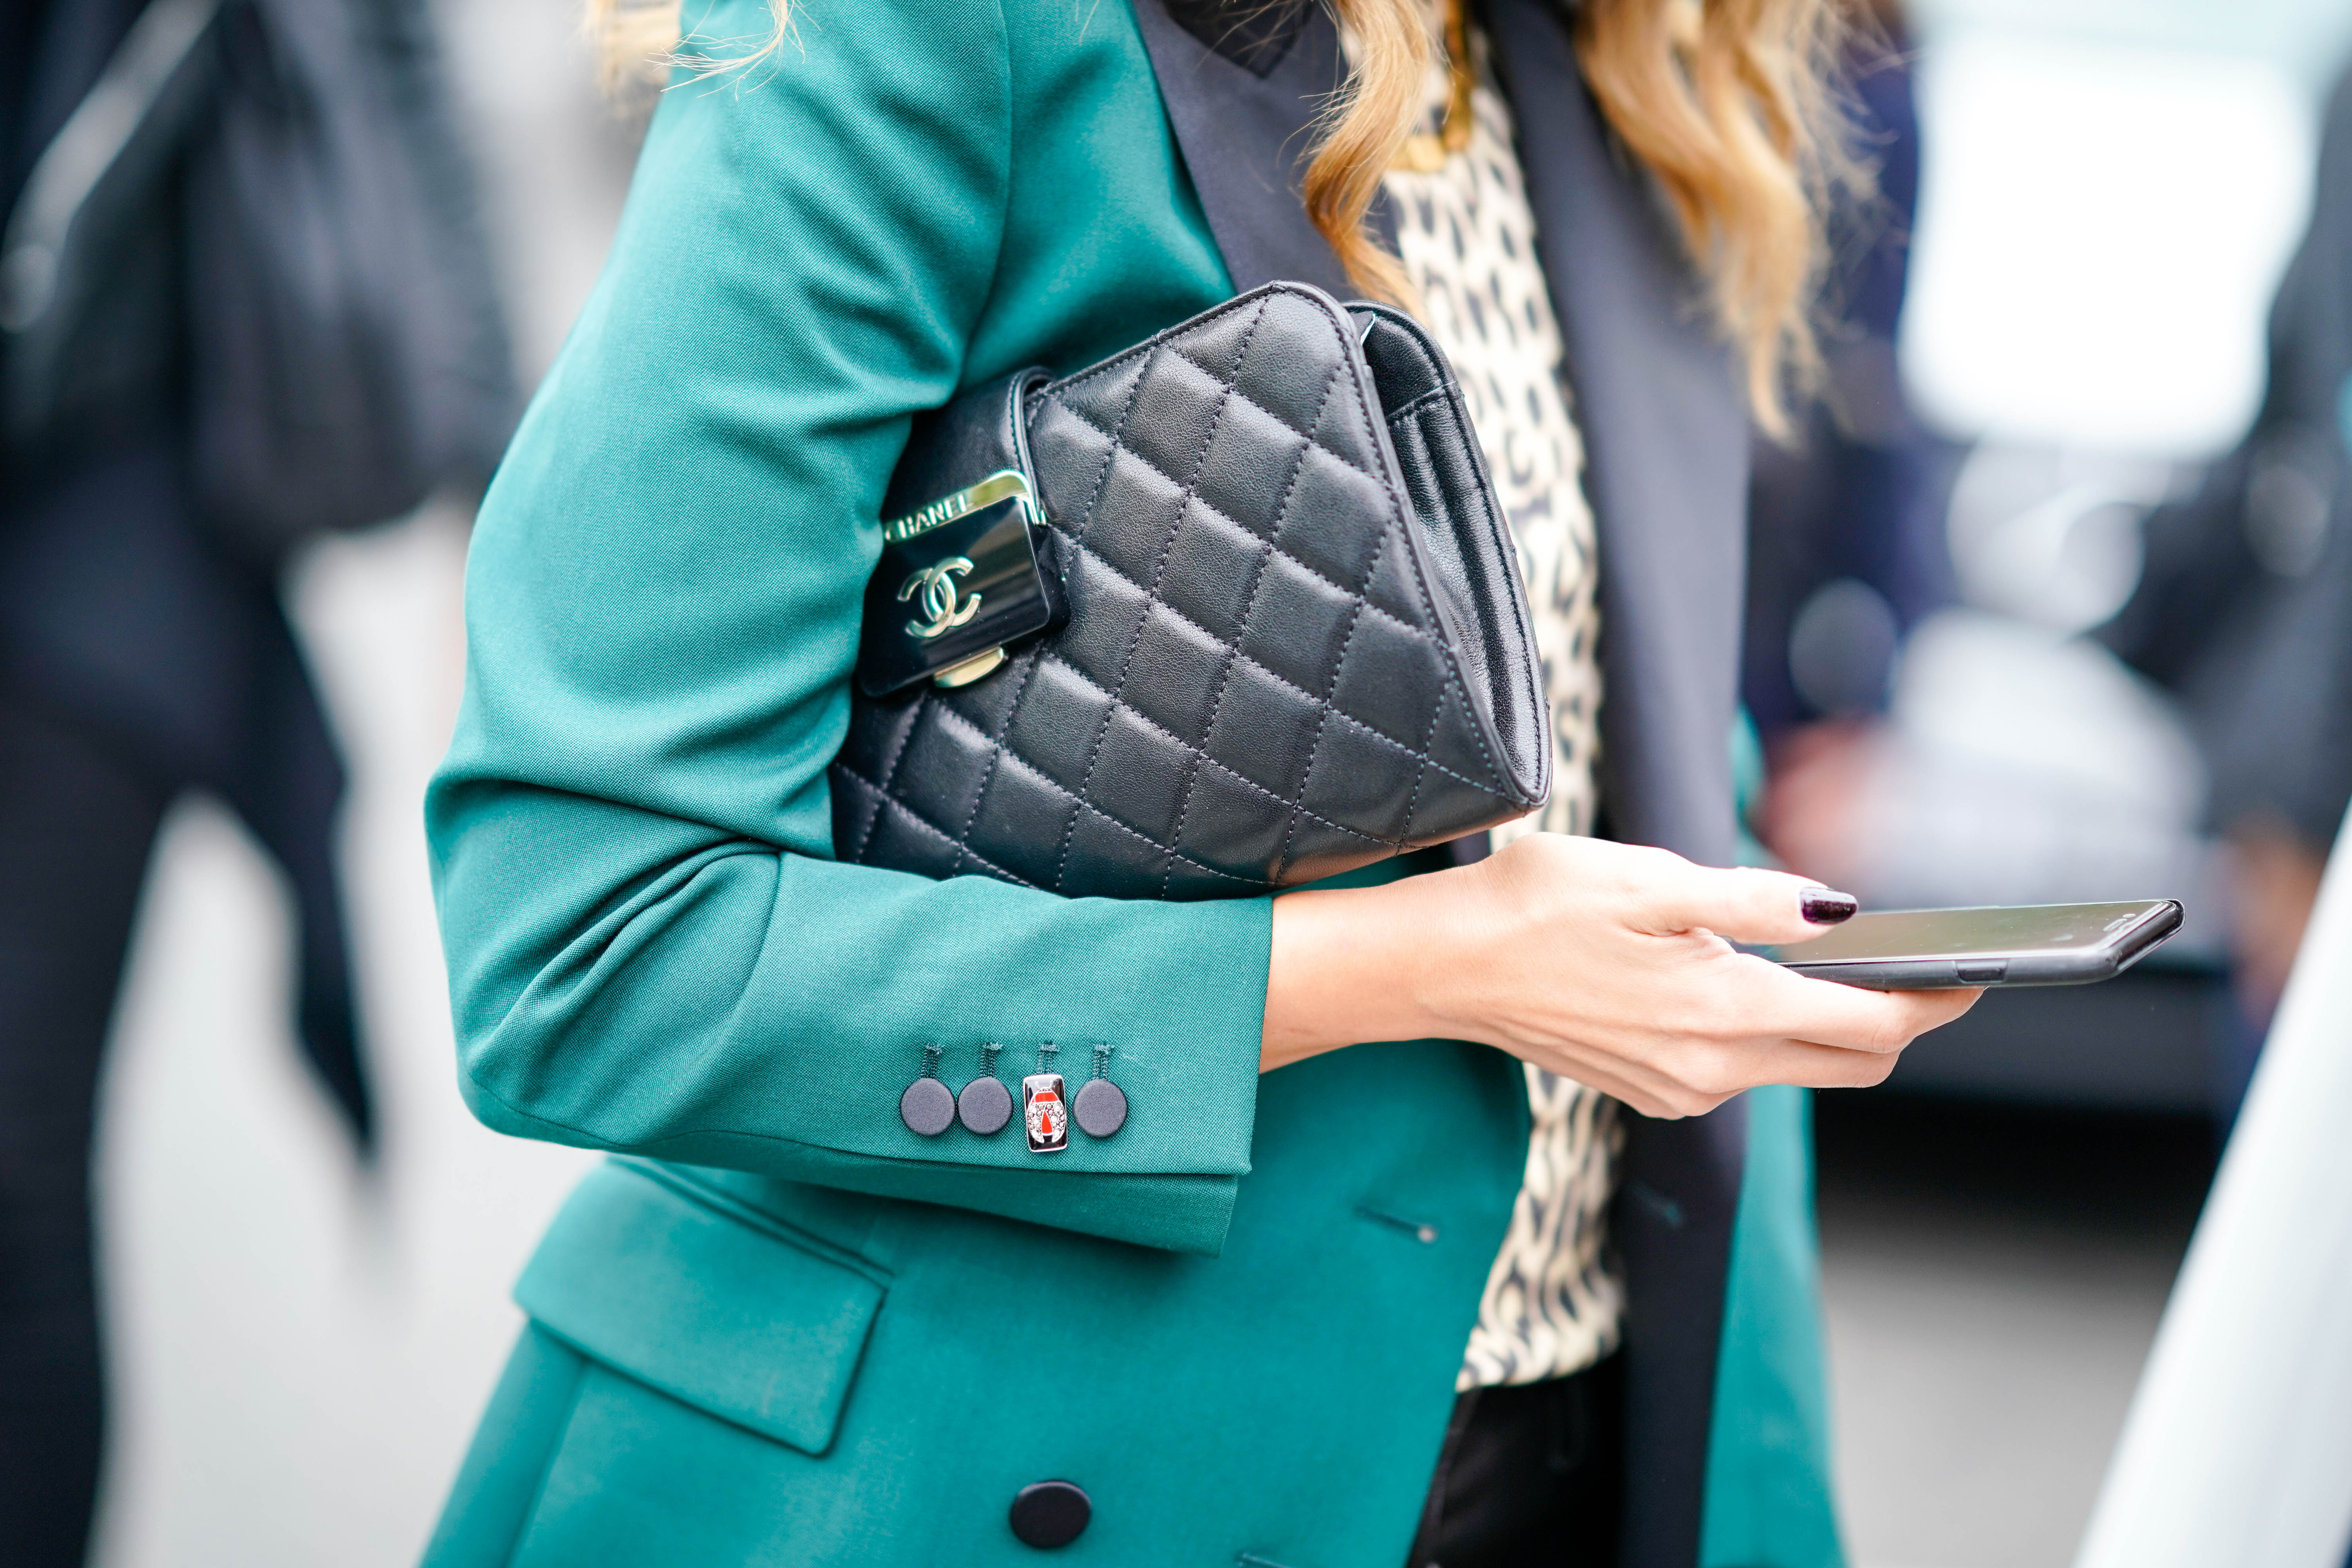 A woman holding a cell phone and a Chanel purse.